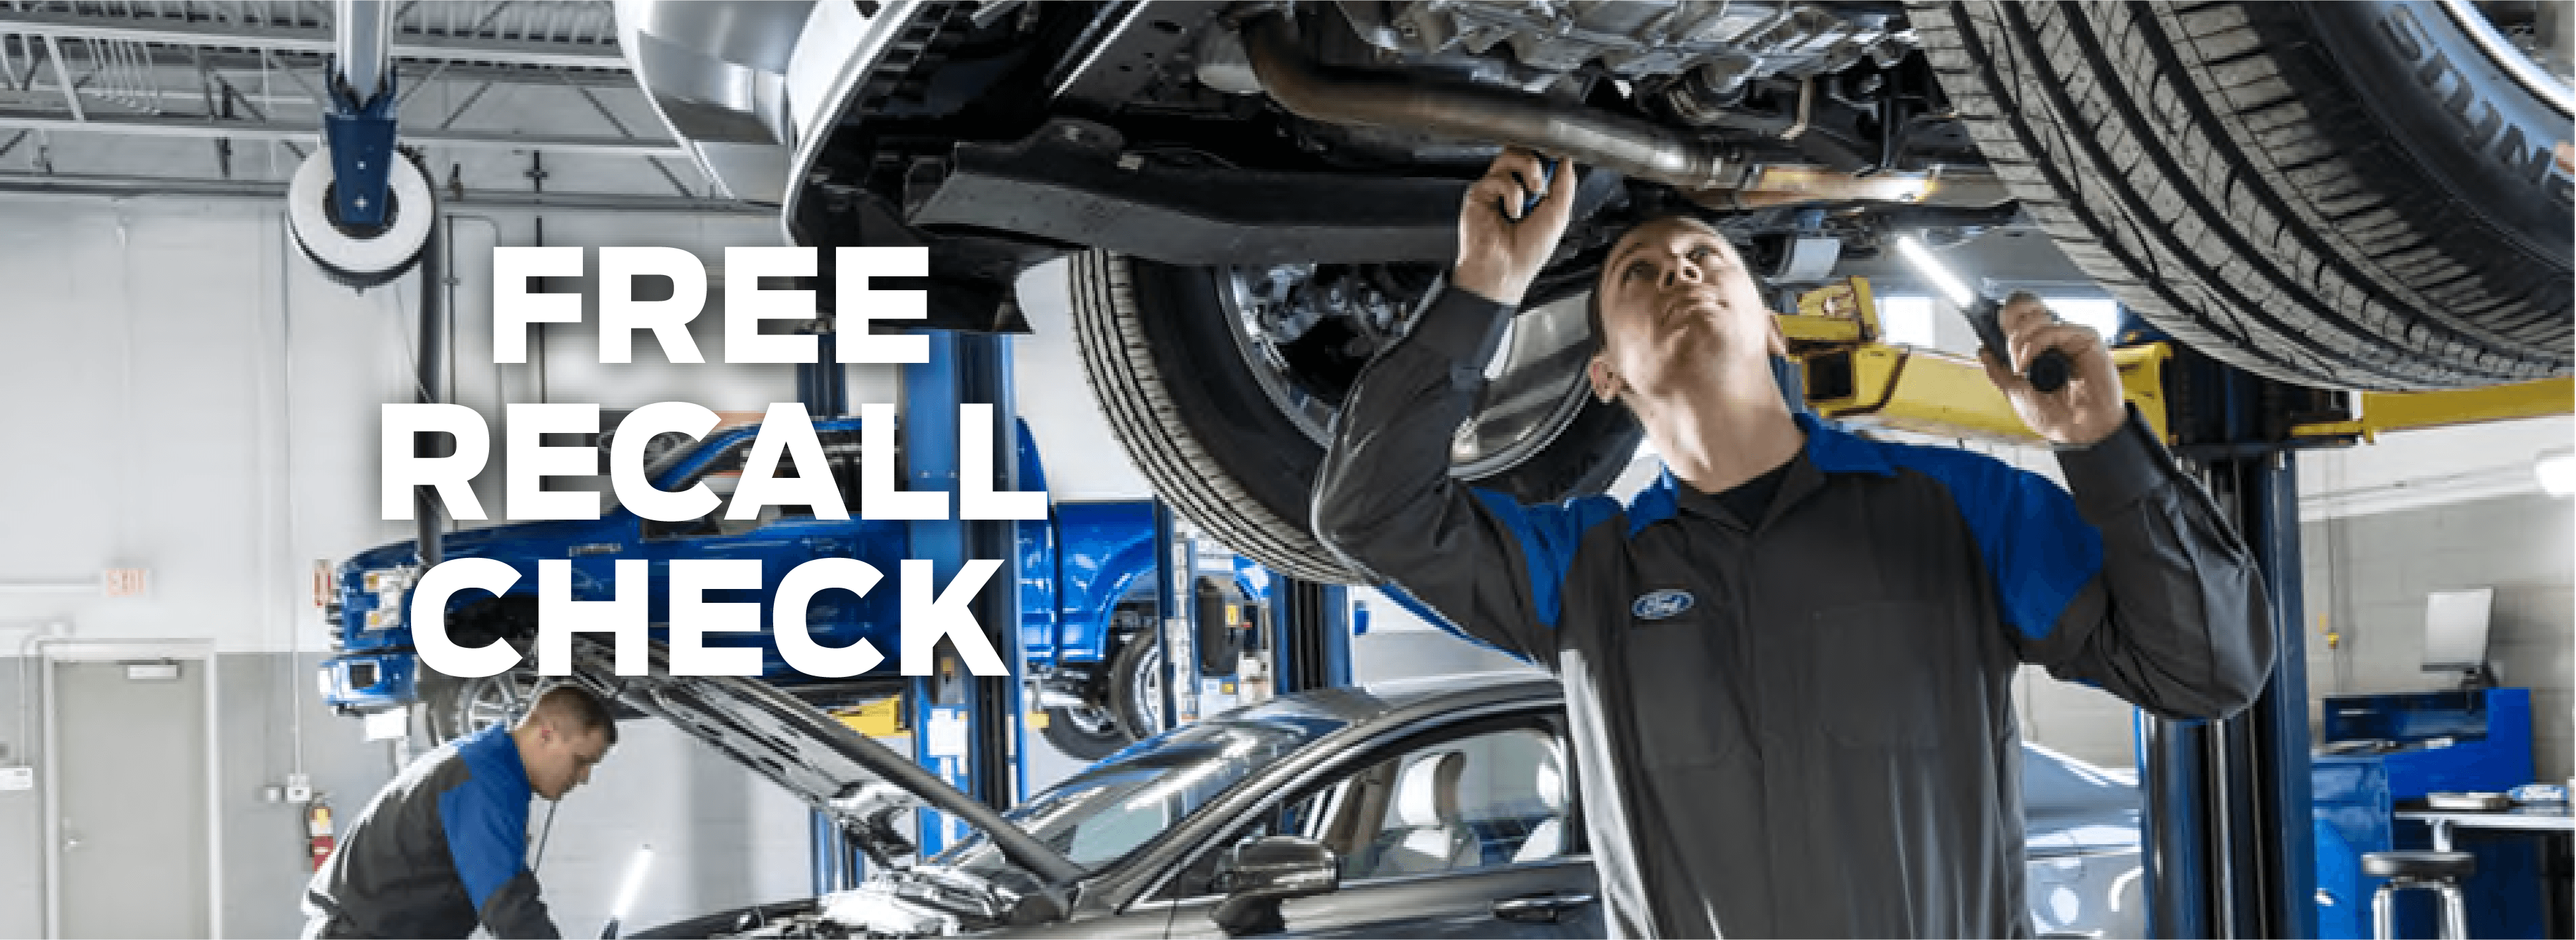 Get a Free Recall Check